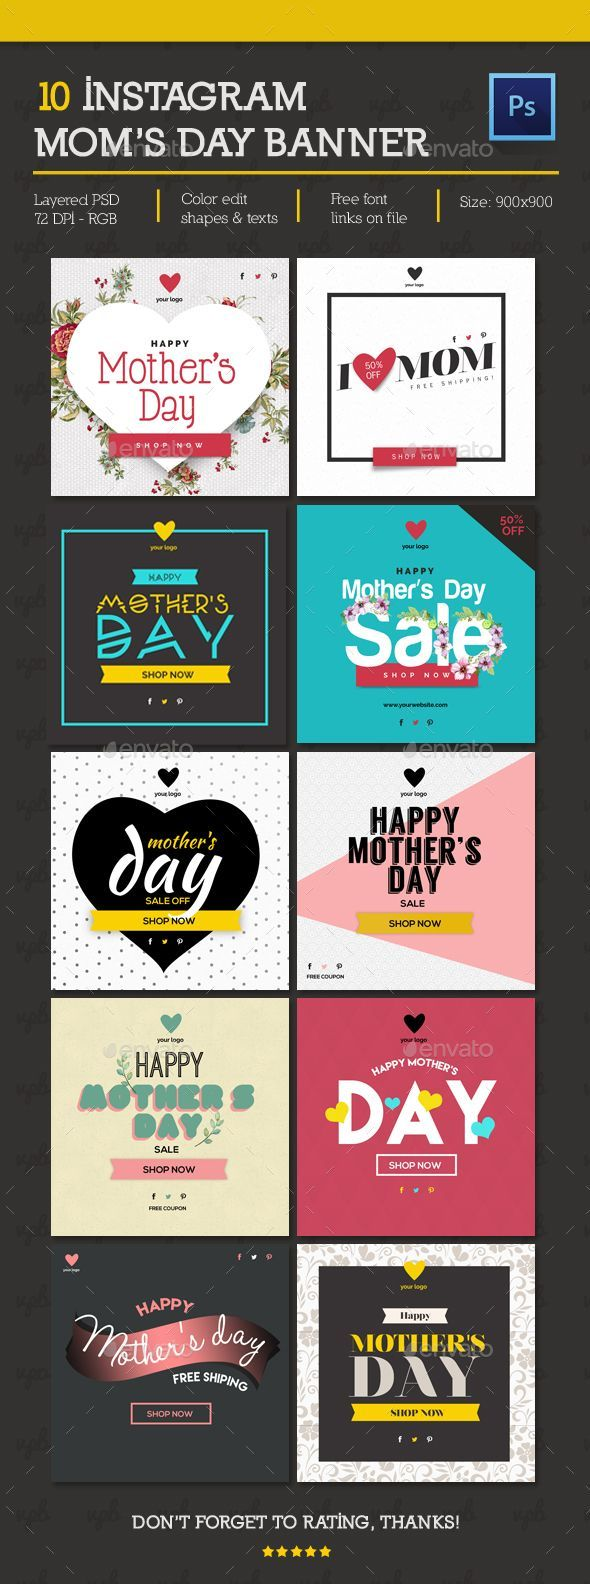 Instagram Banners Template PSD. Download here: http://graphicriver.net/item/banner-instagram/15913952?ref=ksioks